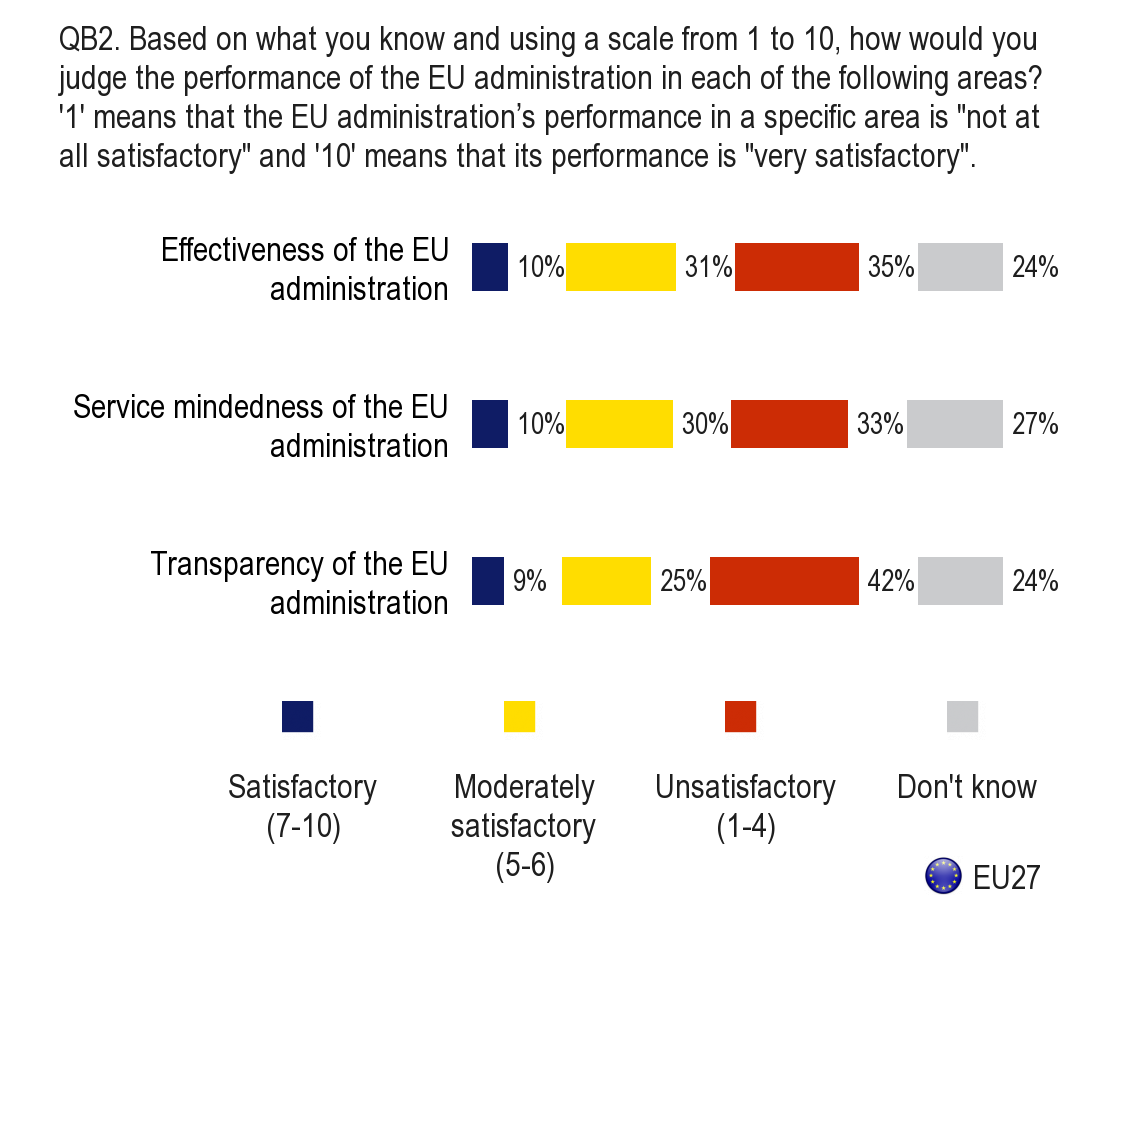 QB2. Based on what you know and using a scale from 1 to 10, how would you judge the performance of the EU administration in each of the following areas?